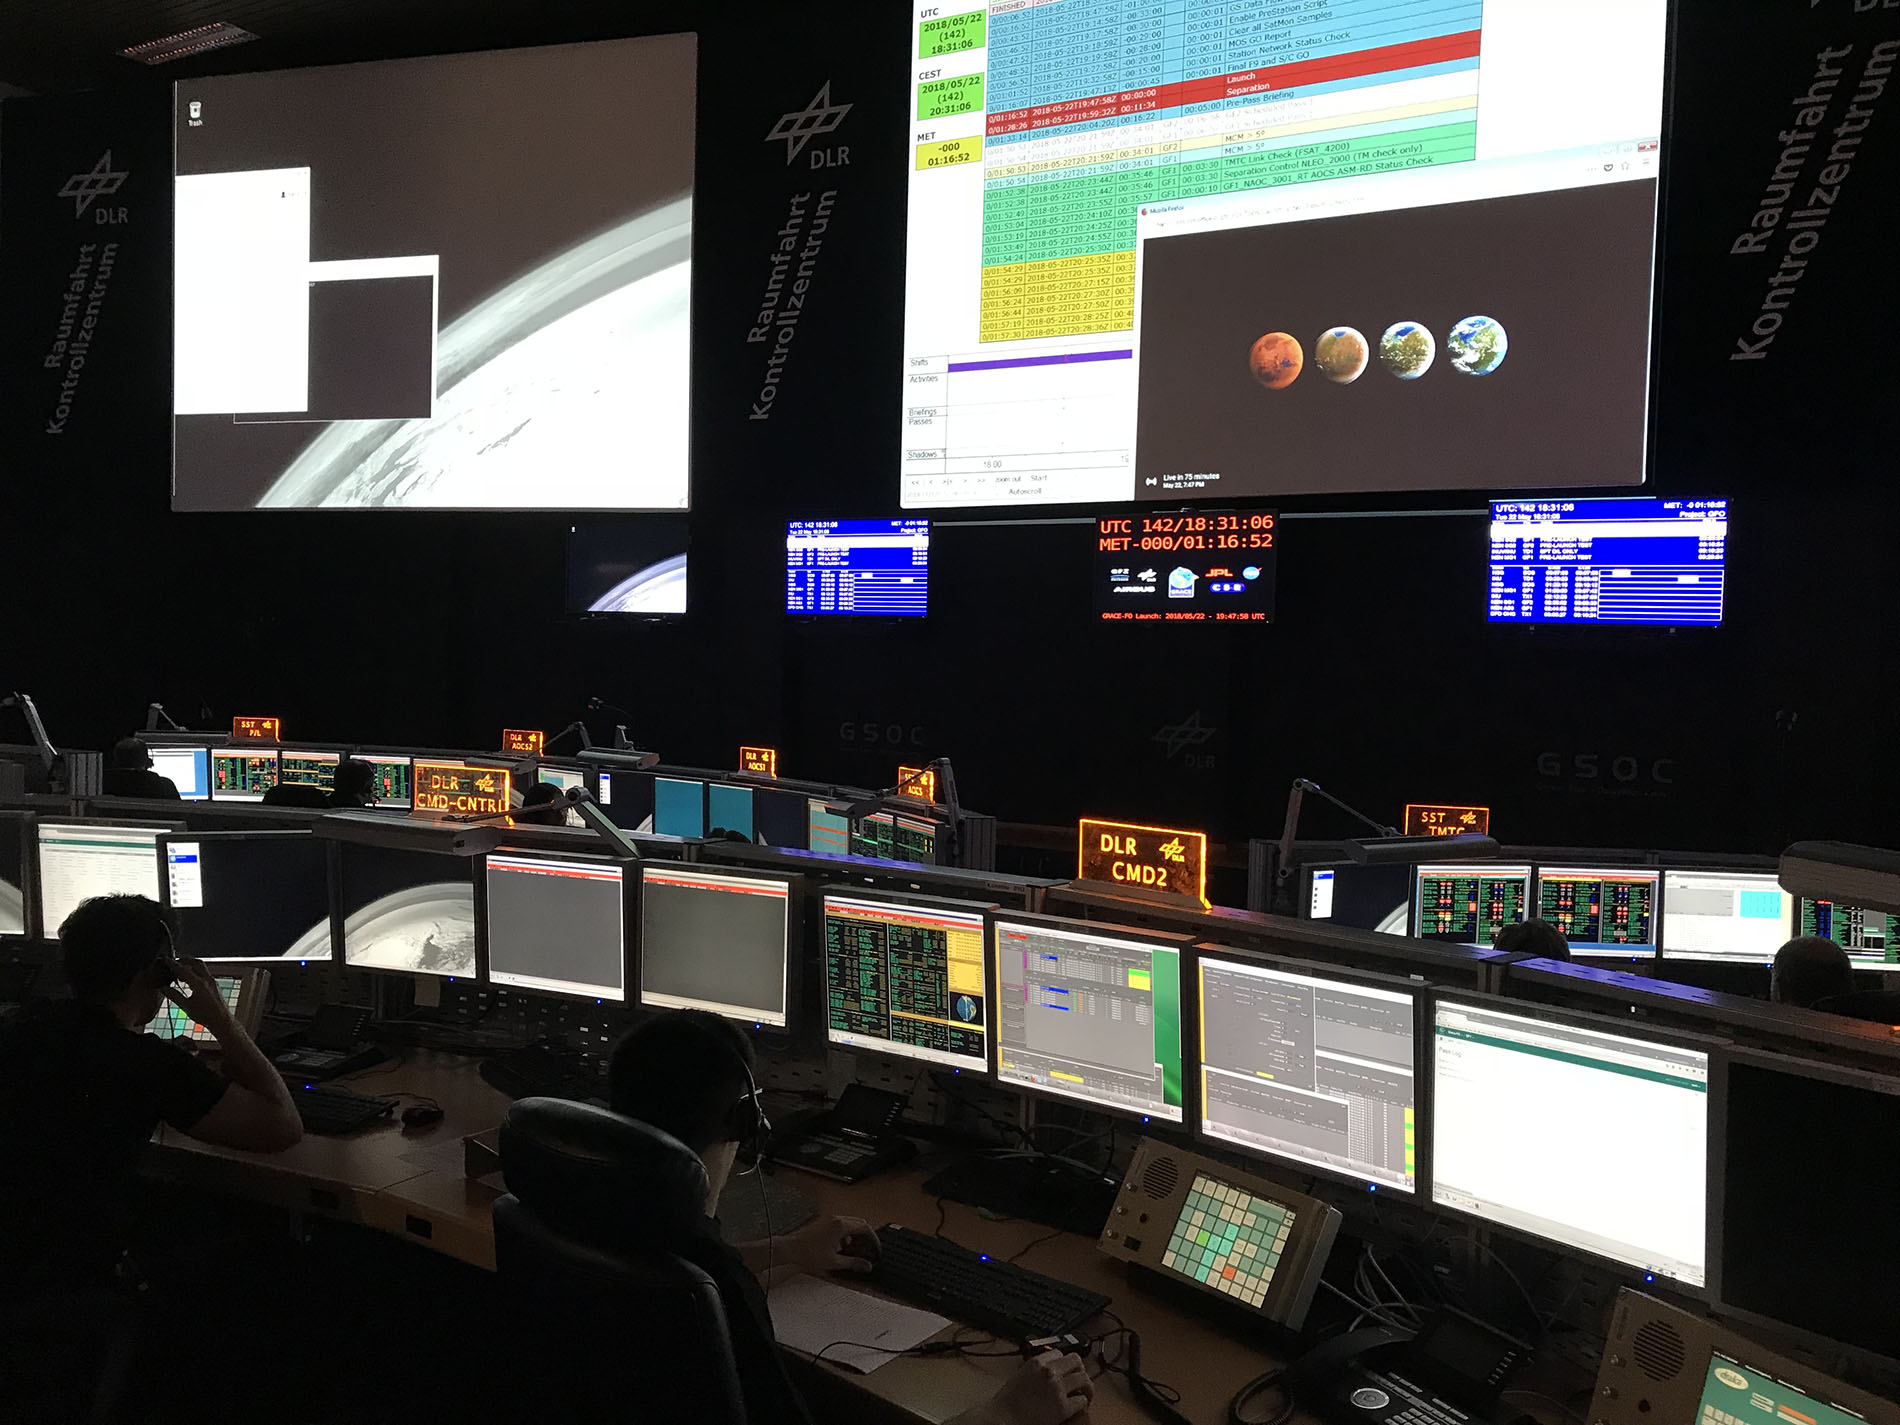 The darkened room of mission control is lighted by computer screens.